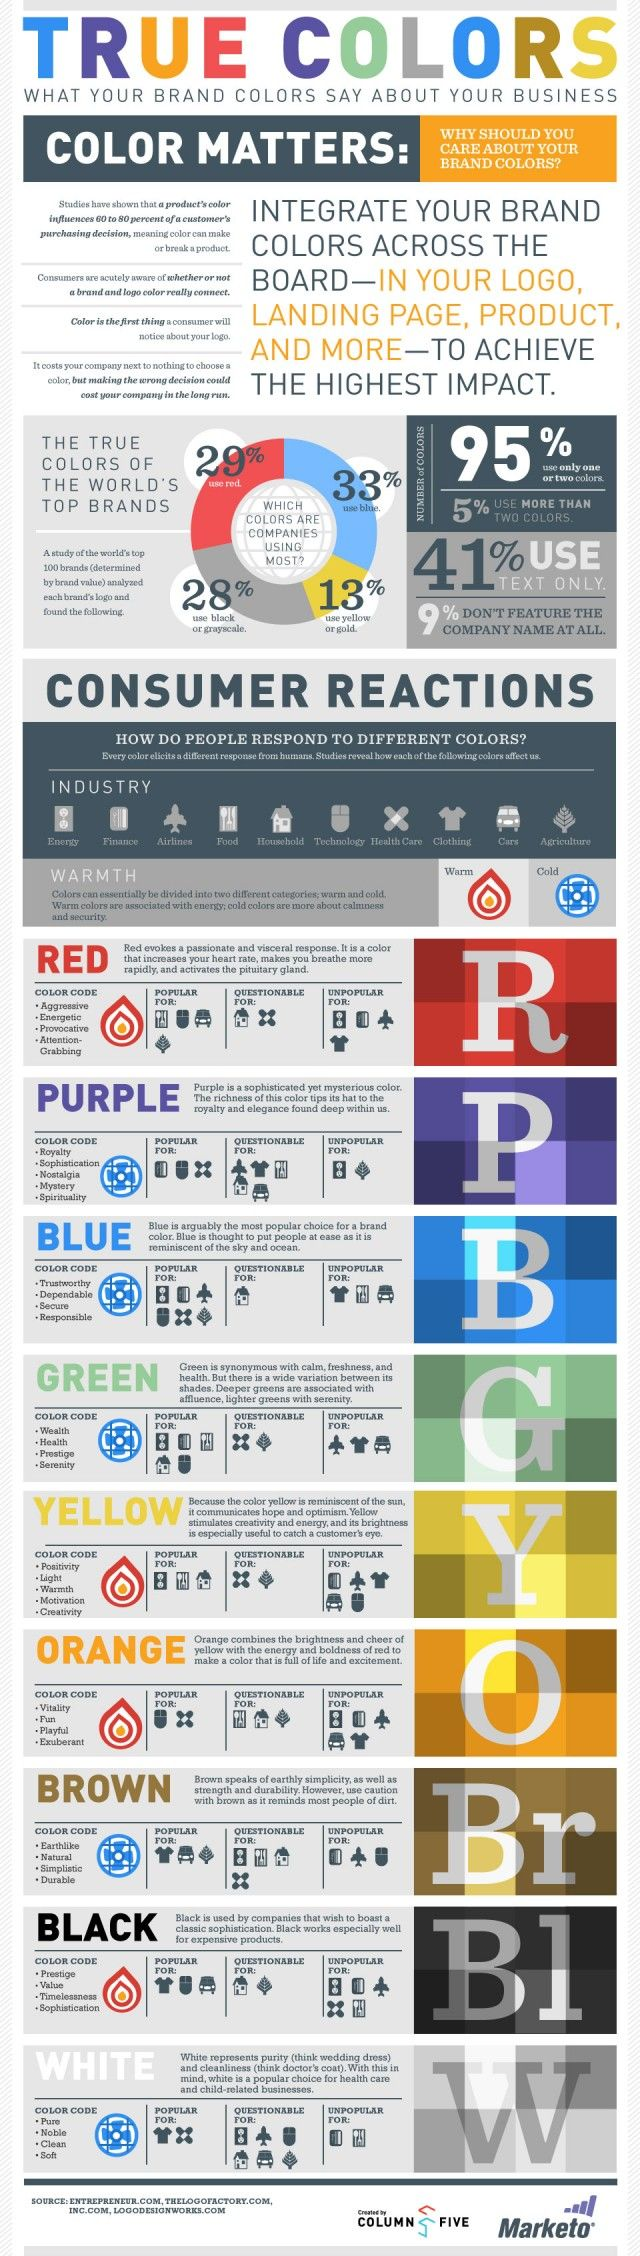 What colors say about your brand.